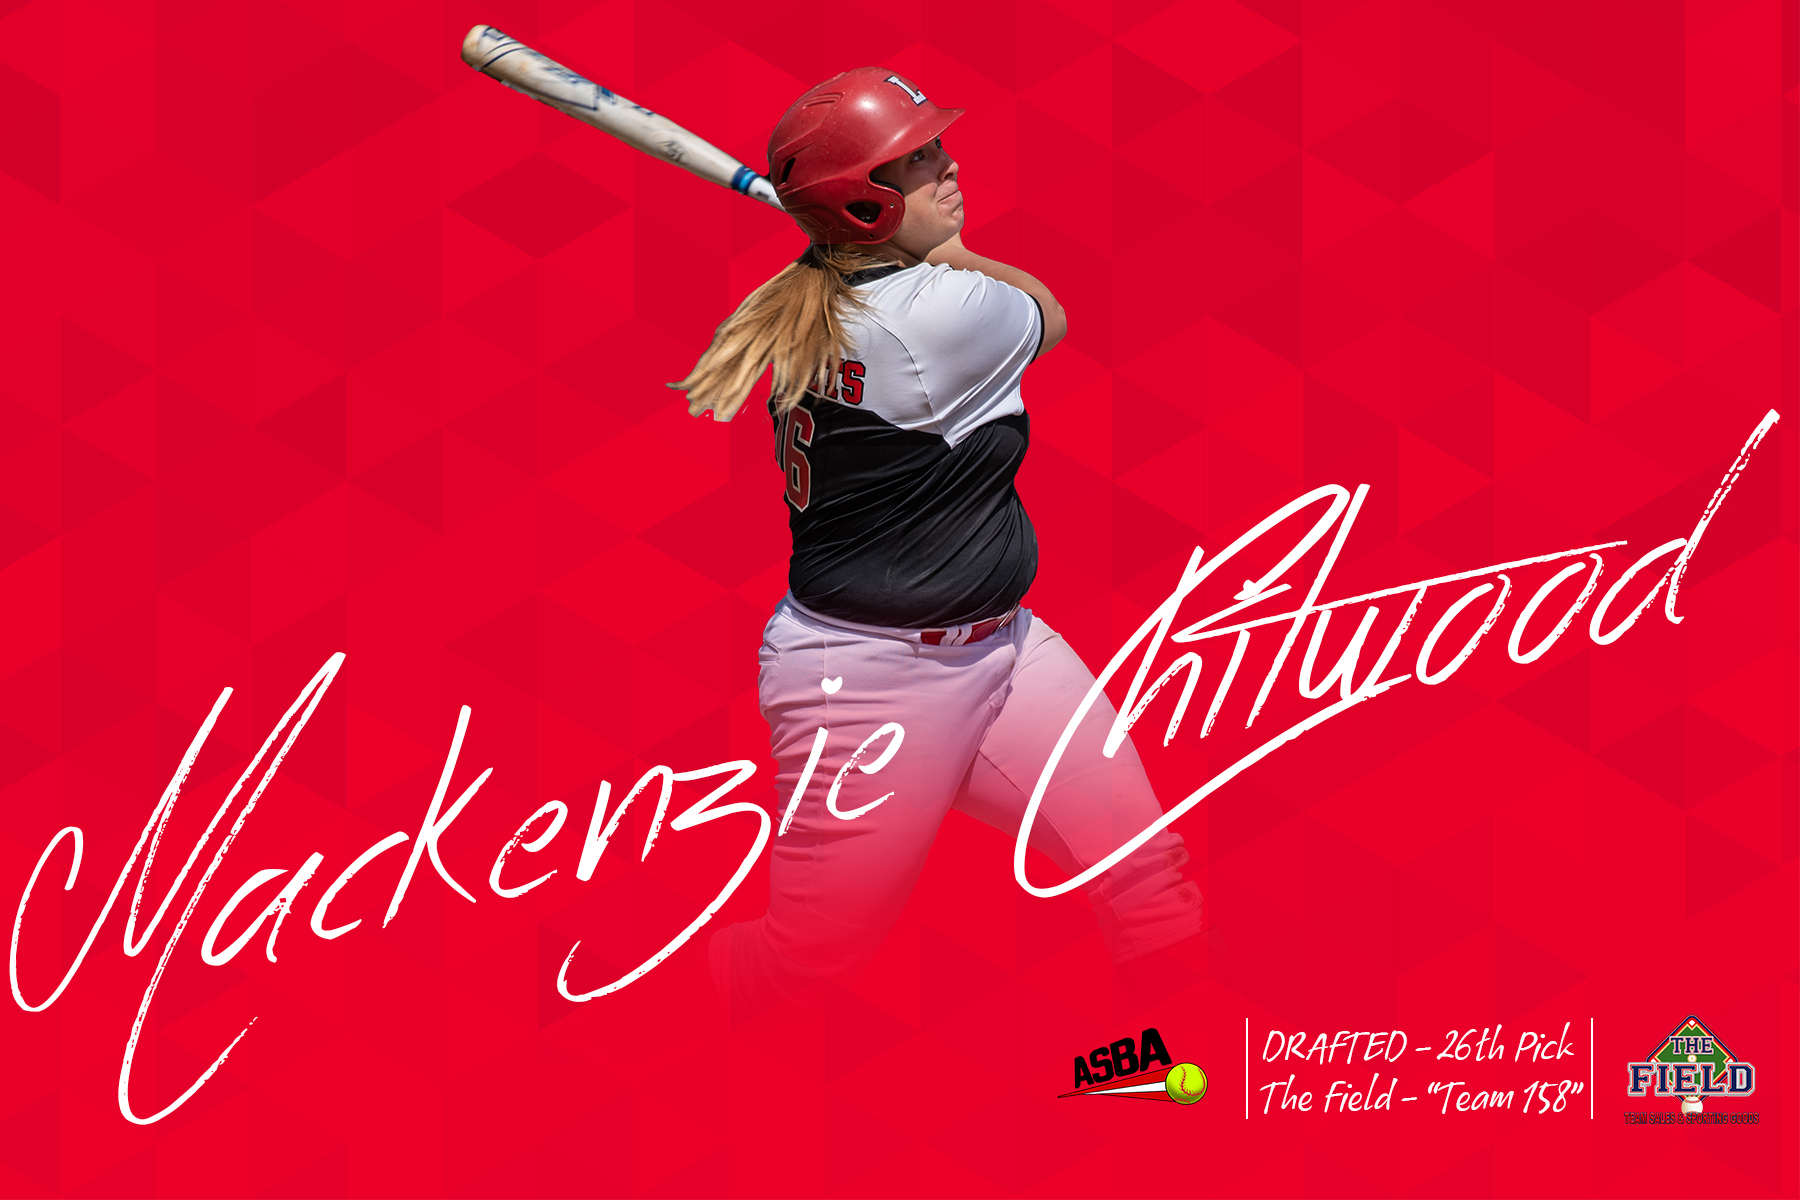 Red background with photo of Mackenzie Chitwood hitting and her signature in white across image